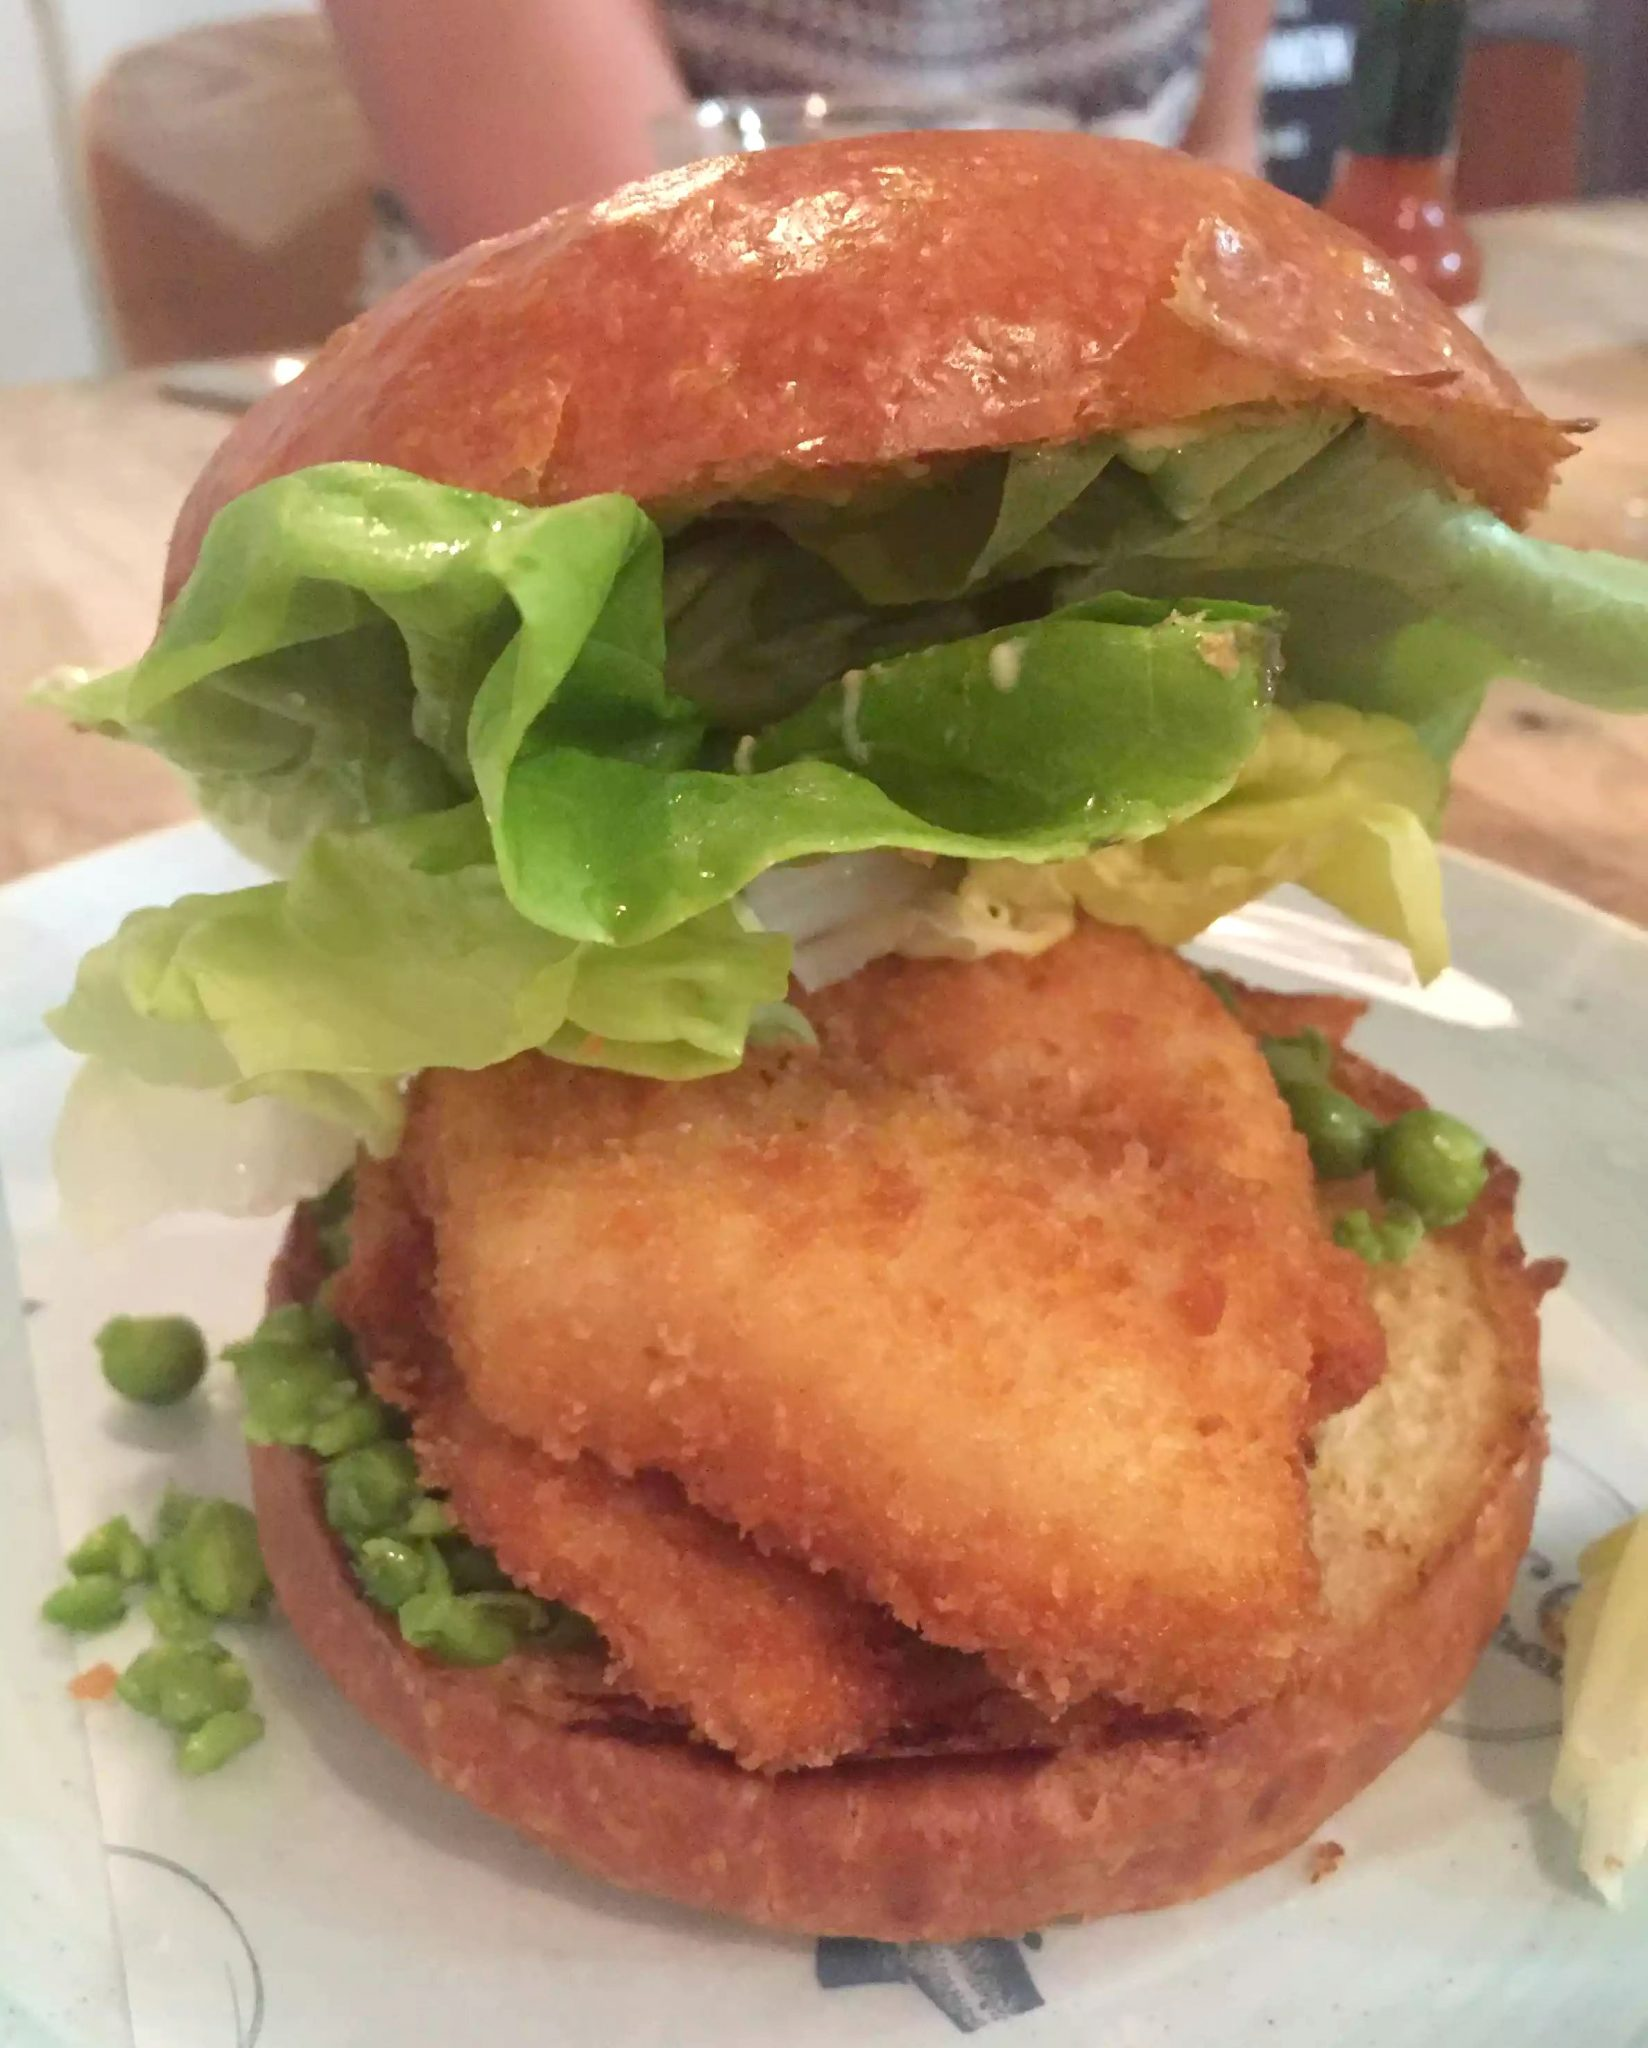 Lure Fish Kitchen North London Kentish Town Seafood Restaurant Seadog Breaded Cod Burger